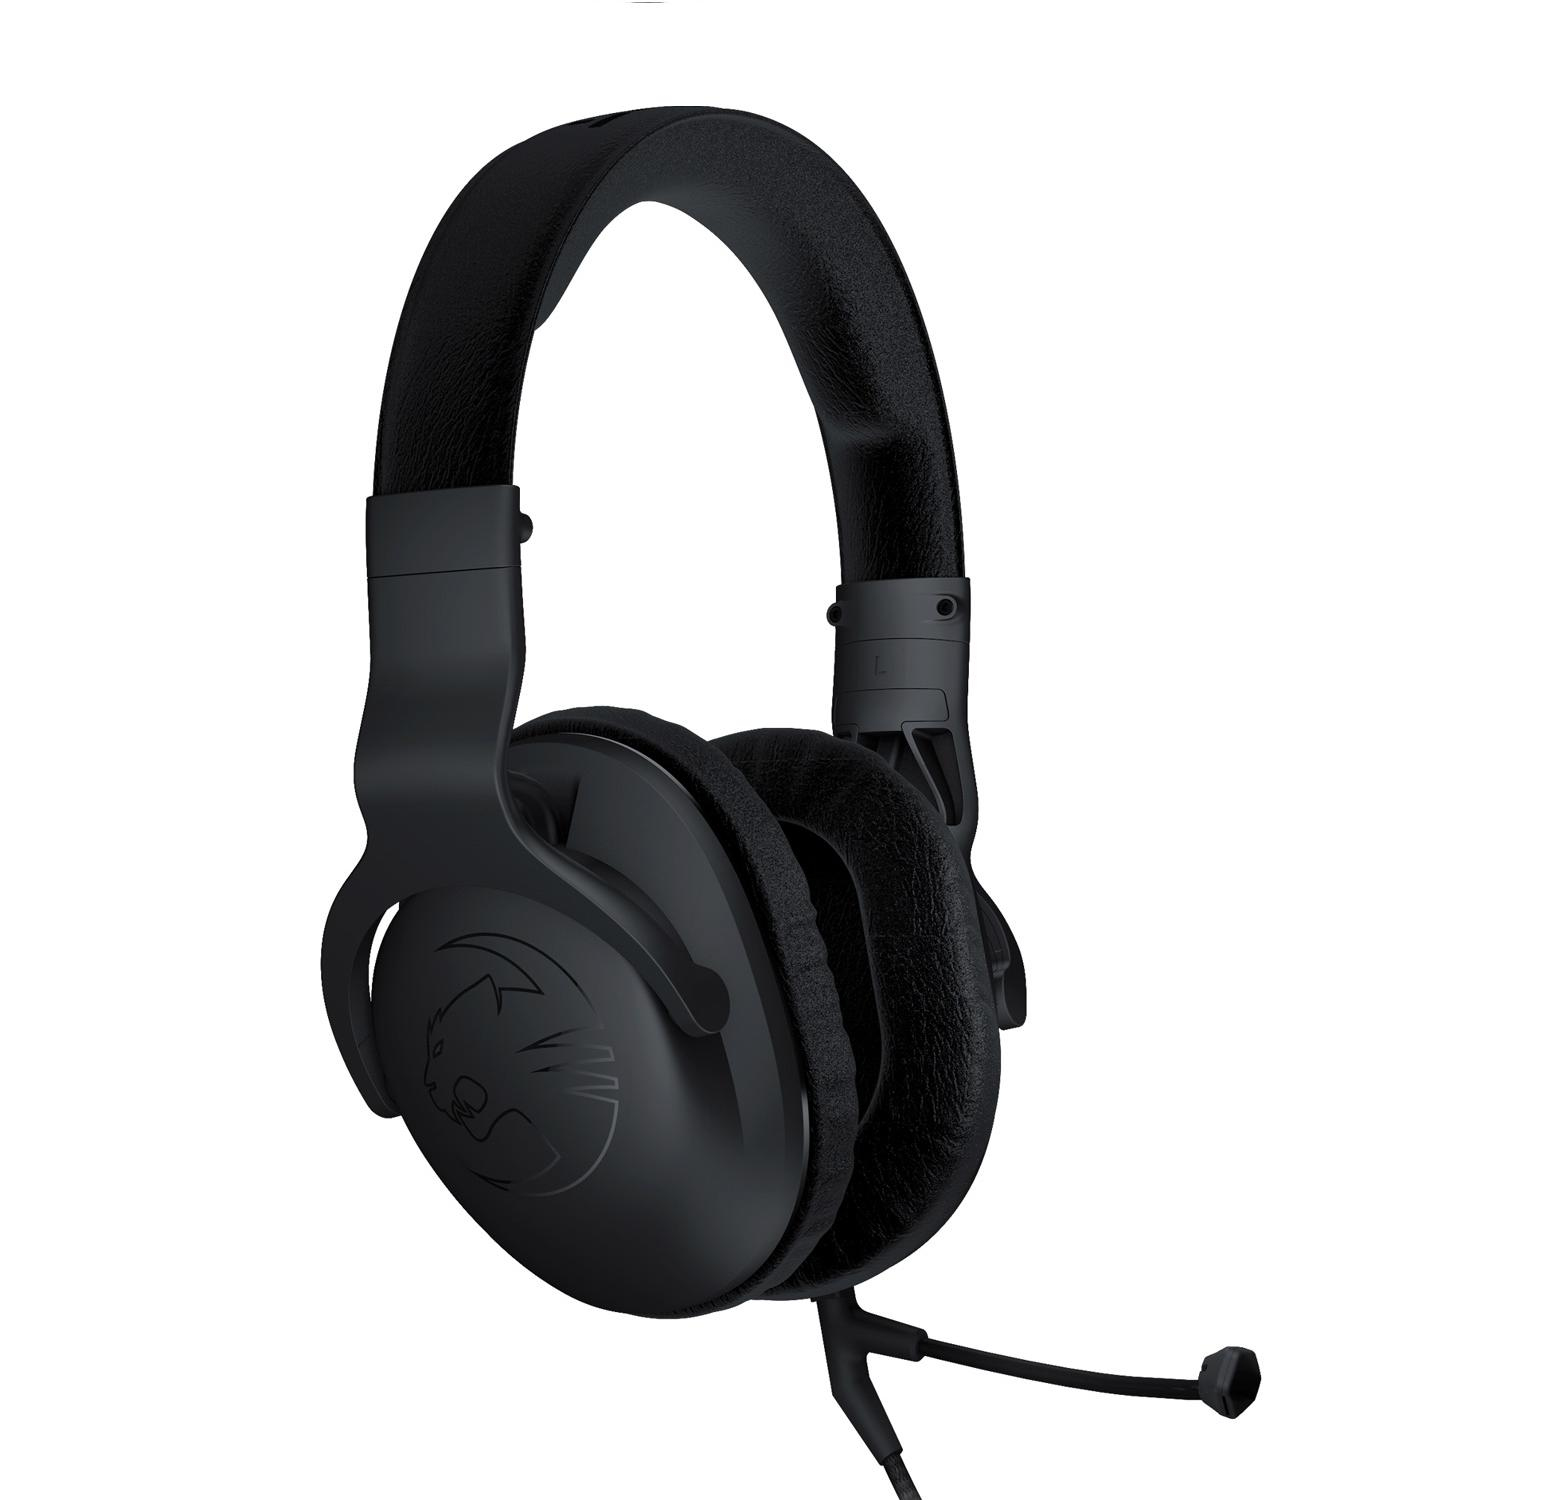 ROCCAT ROC-14-510 CROSS MULTI-PLATFORM OVER-EAR STEREO GAMING HEADSET